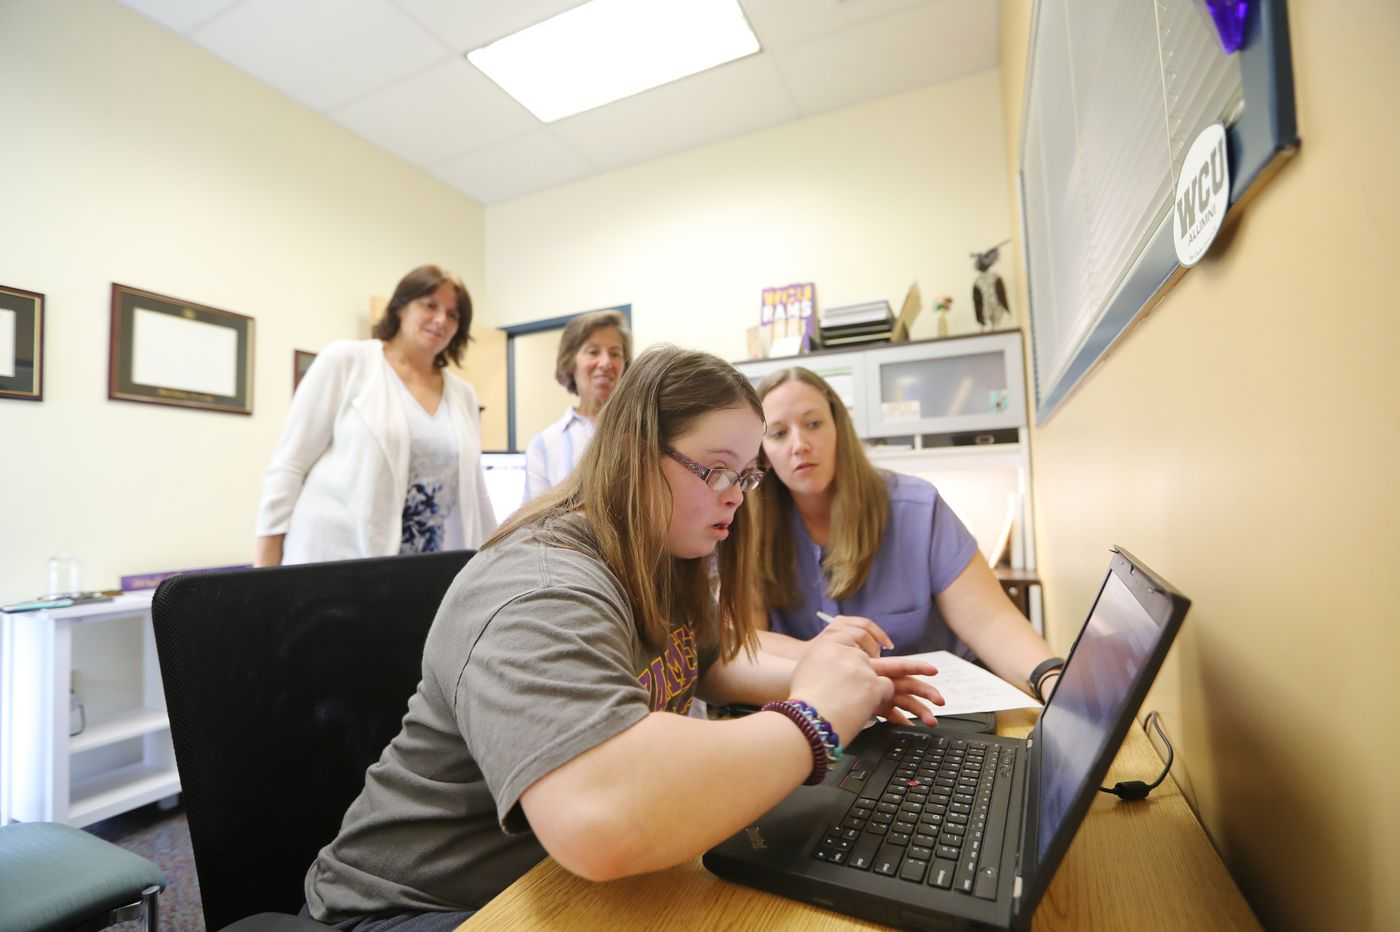 'The choice should be there.' More colleges enroll students with intellectual disabilities